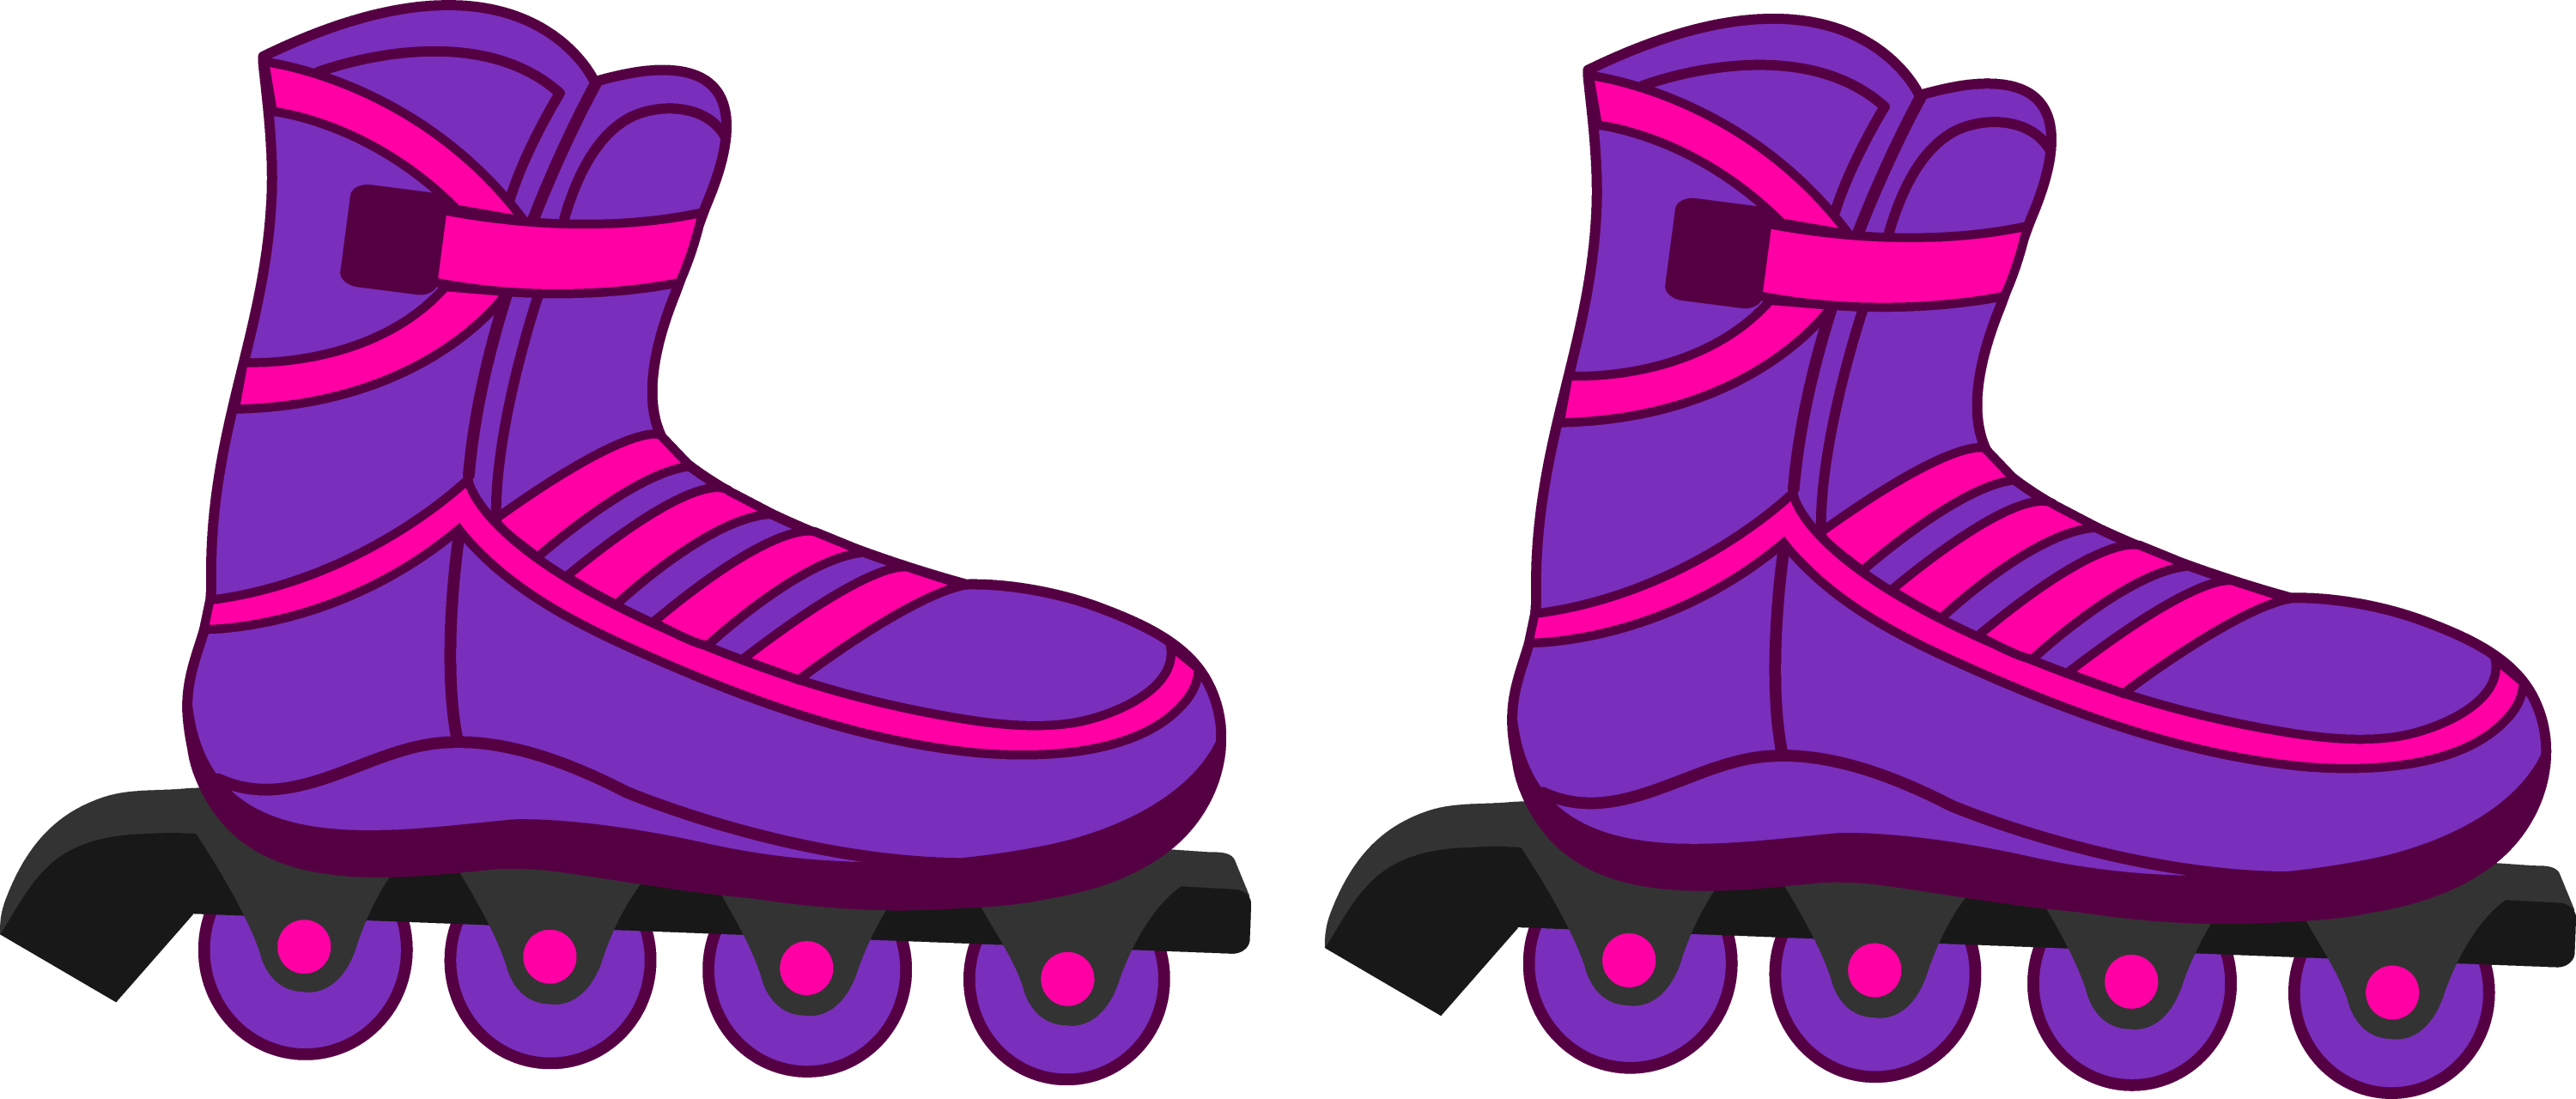 ... roller skates clipart 80 s roller skates clipart please enable